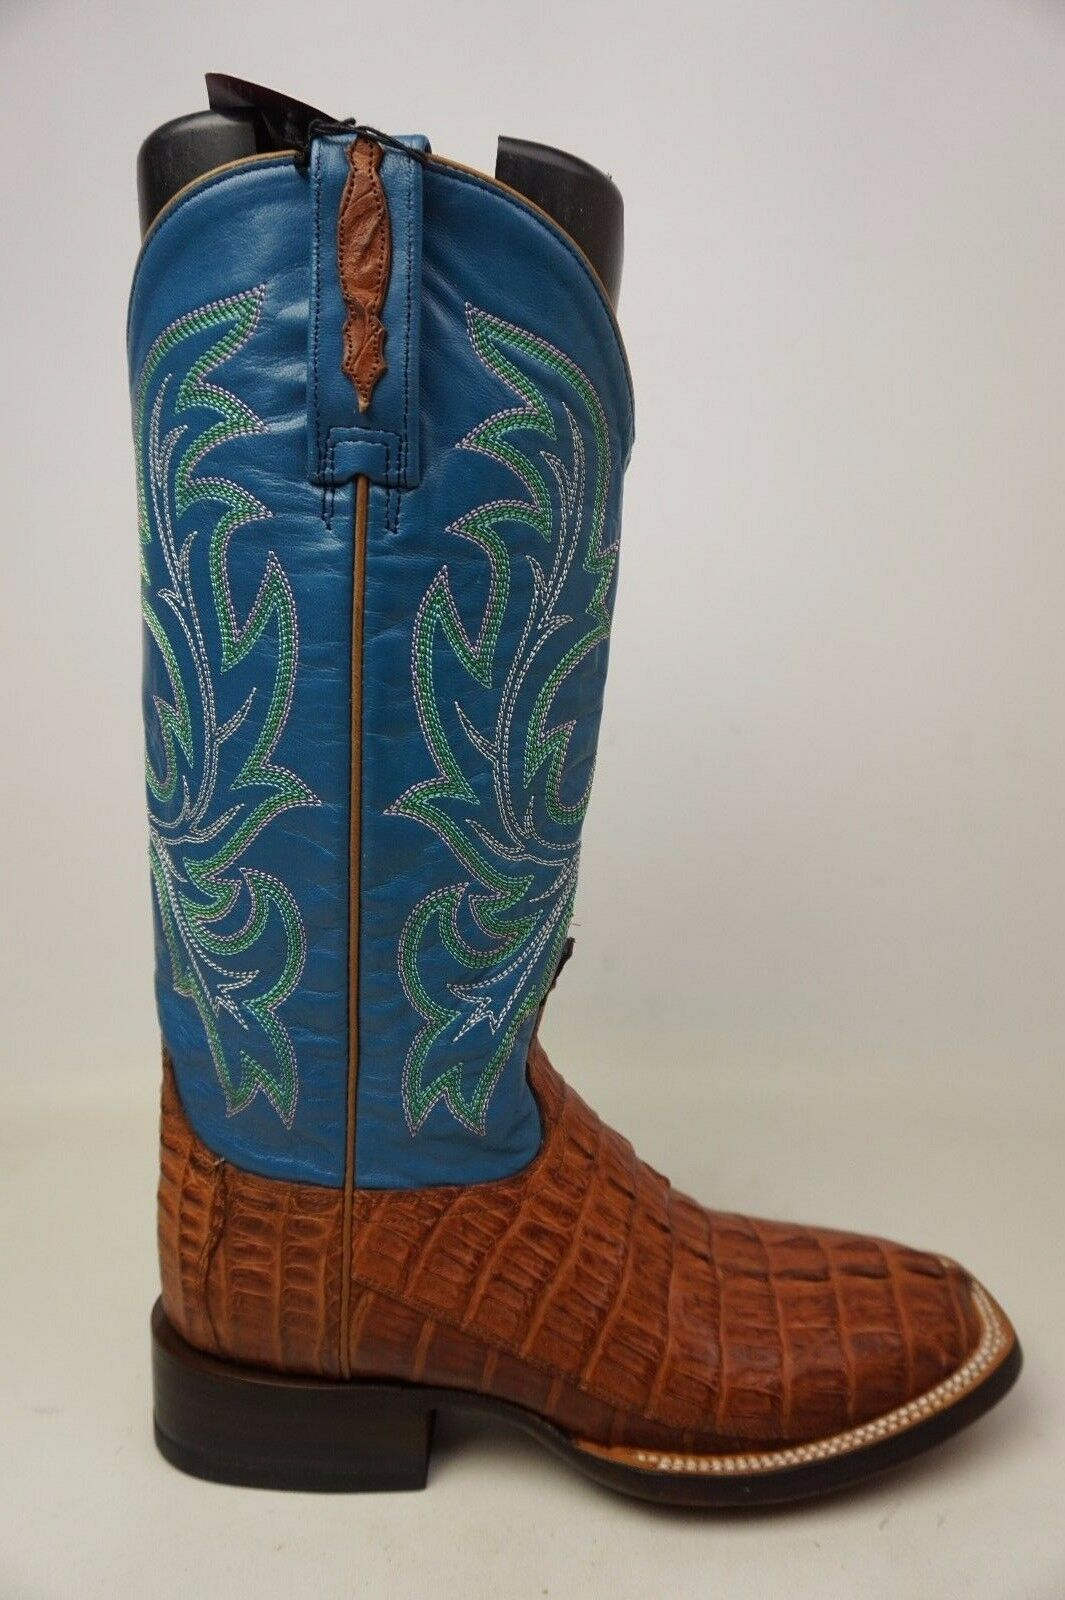 Lucchese Bootmaker M4945 W Toe Cowboy Boot Whiskey Hornback Caiman Tail Size 8.5